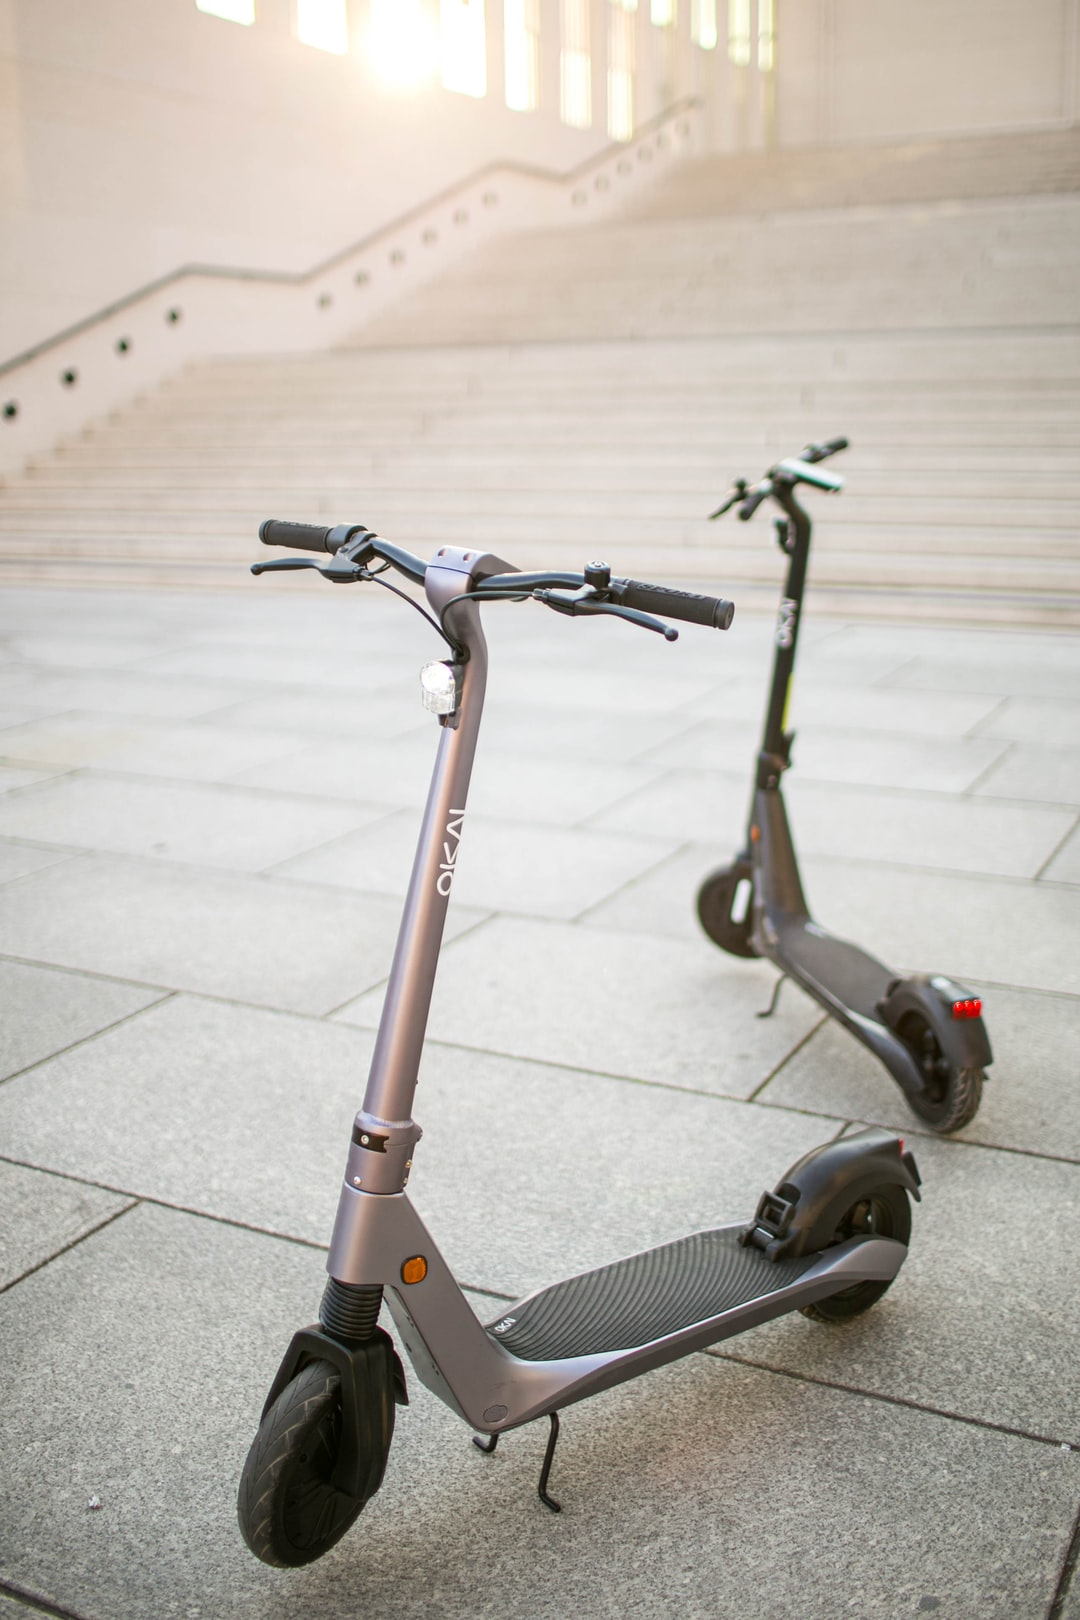 The 9 Best Folding Mobility Scooters To Buy In 2021